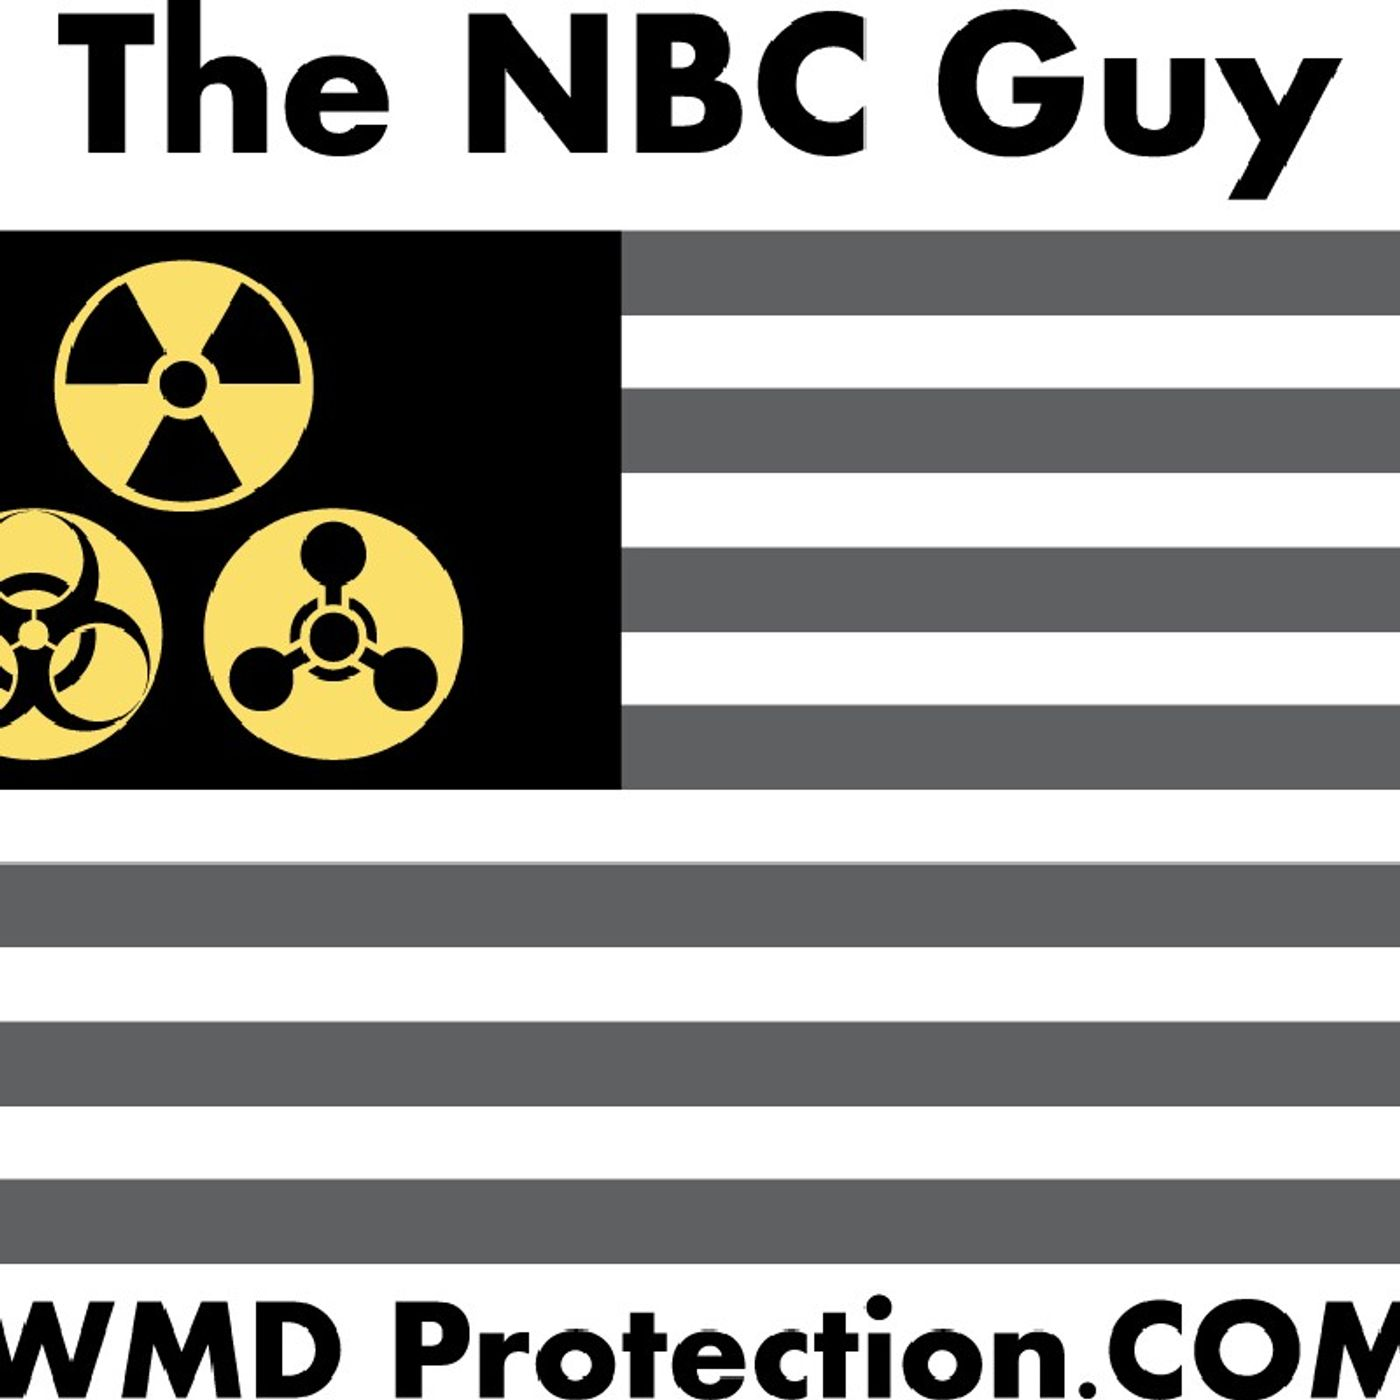 DAC - Preppers Ready